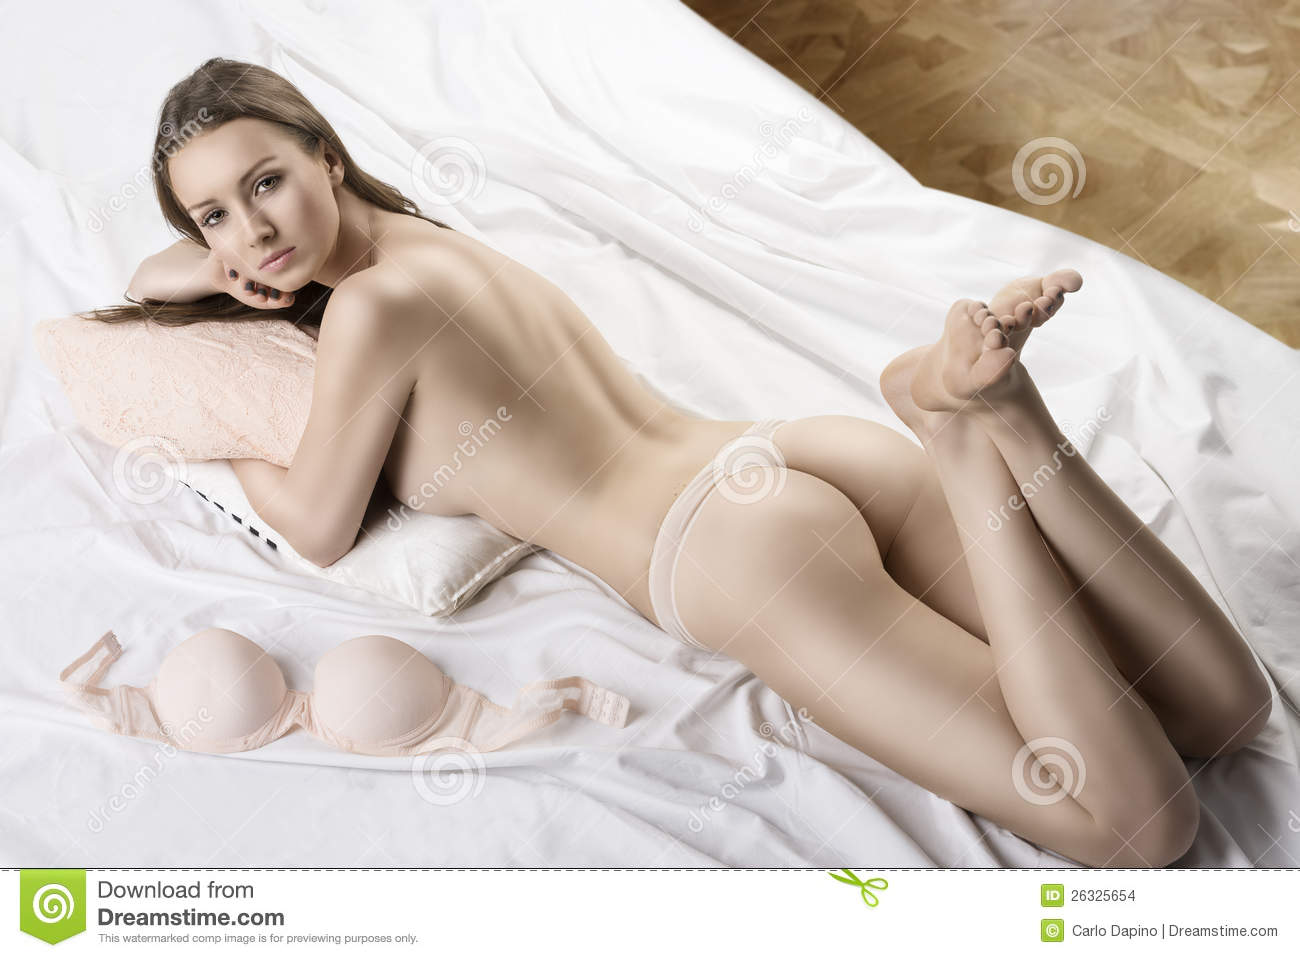 Lady naked on bed consider